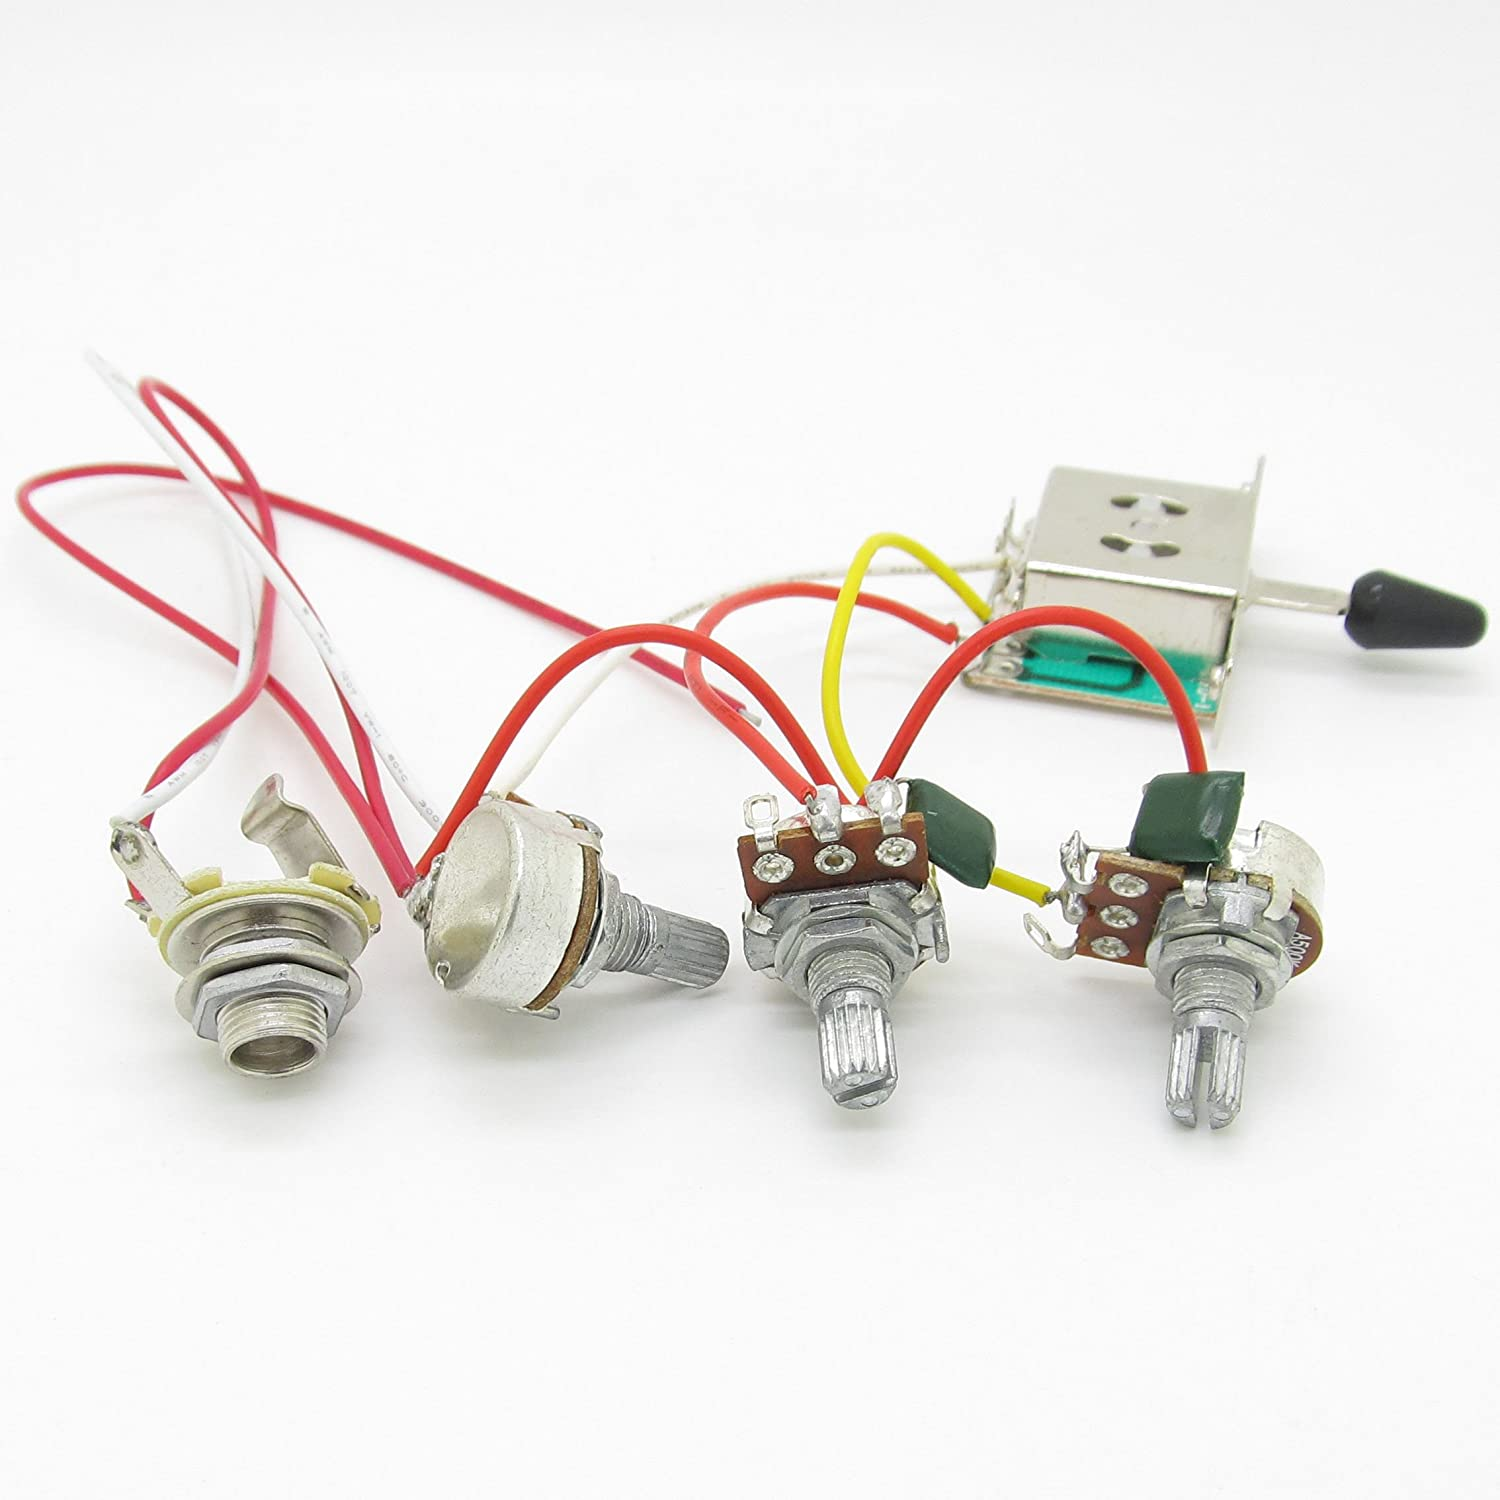 Strat Guitar Wiring Harness Prewired 3x 500k Pots 1 Volume 2 Tone Set Of 5 Way Blade Switch Full Size Control Knobs